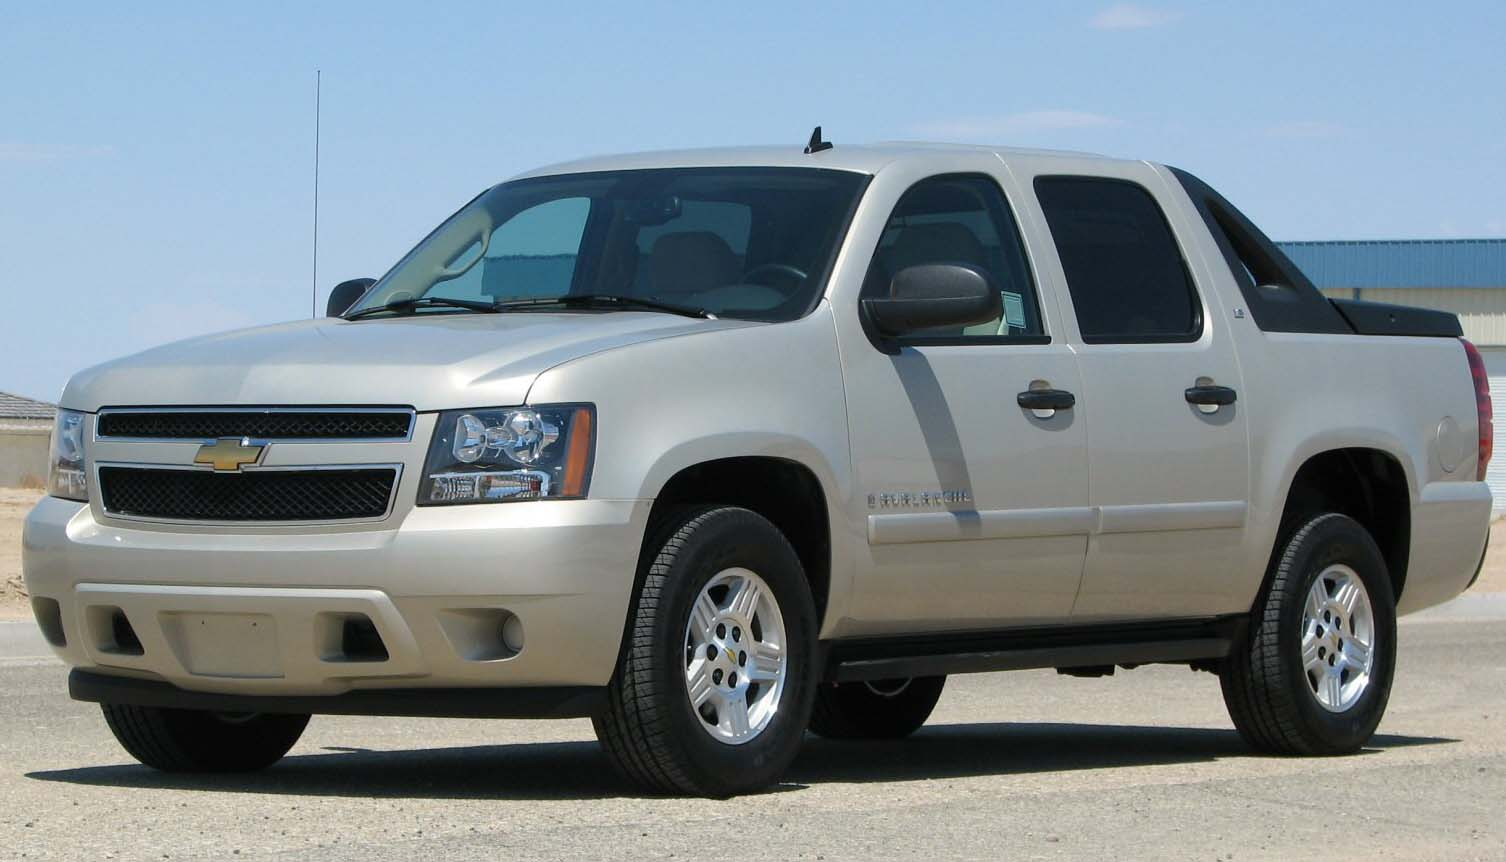 Chevrolet Avalanche Wikipedia Engine Diagram Of 02 Gmc 6 0 Duramax